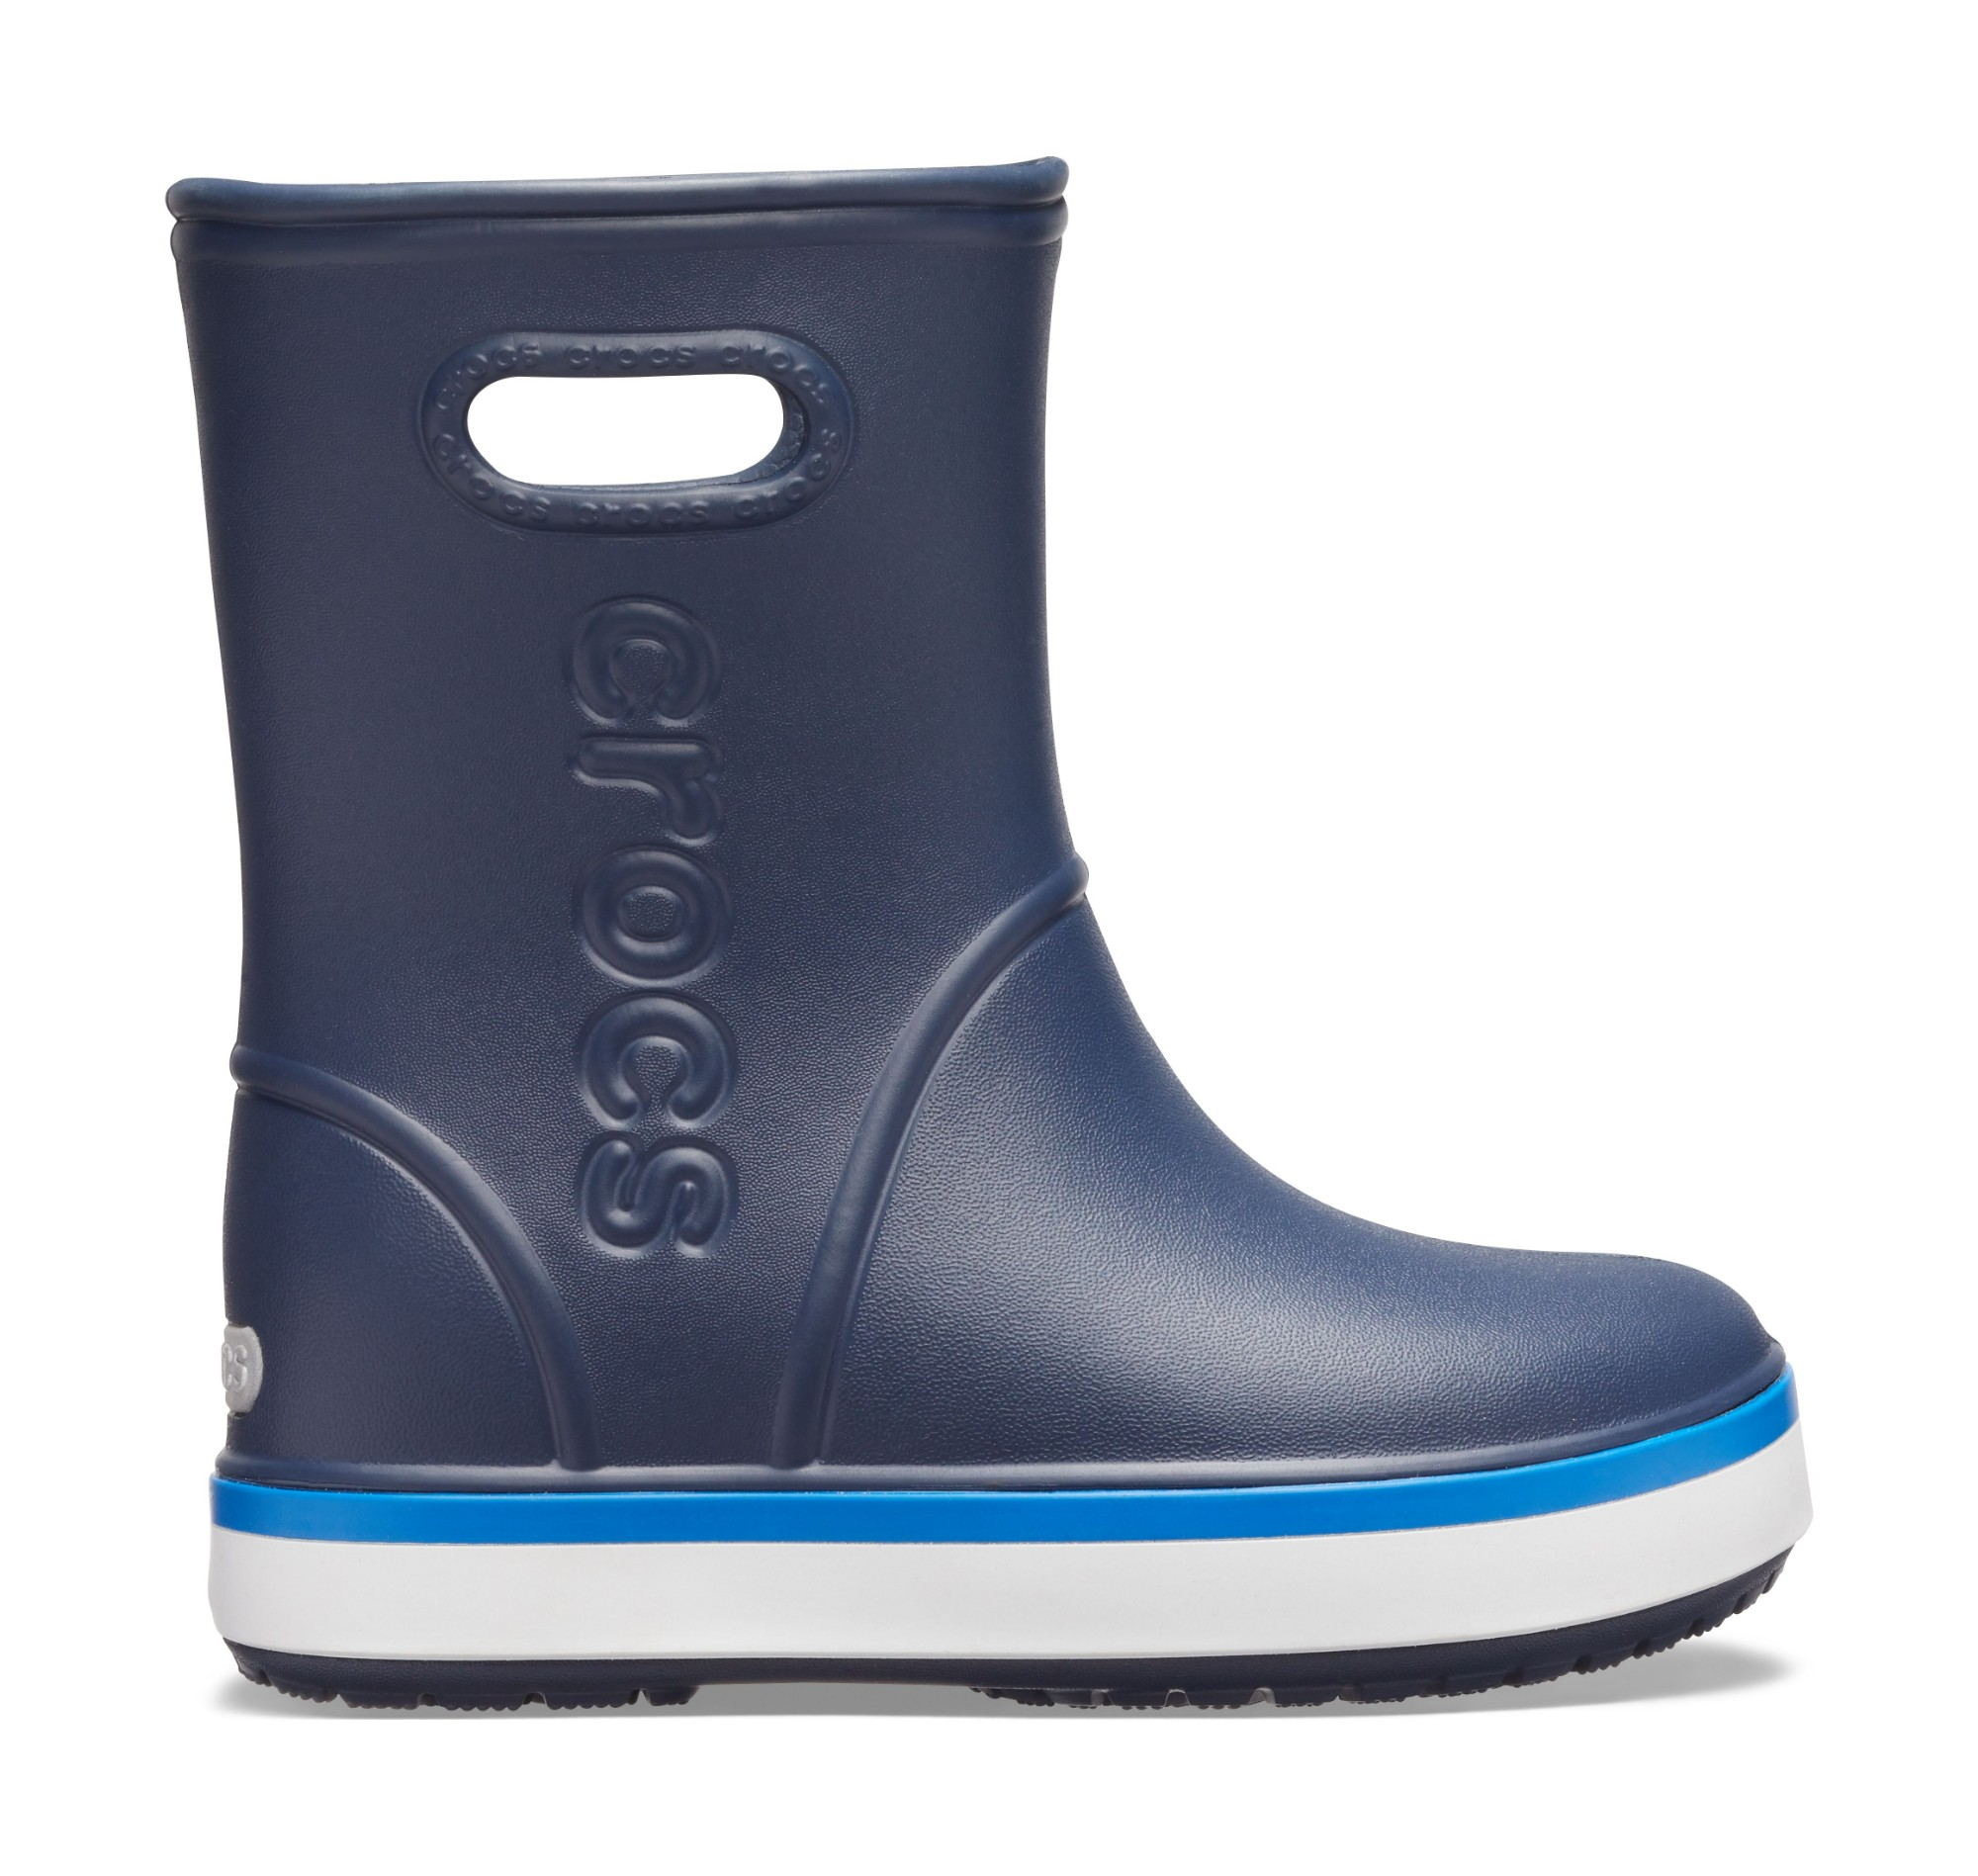 Crocs™ Crocband Rain Boot Kid's Navy/Bright Cobalt 24